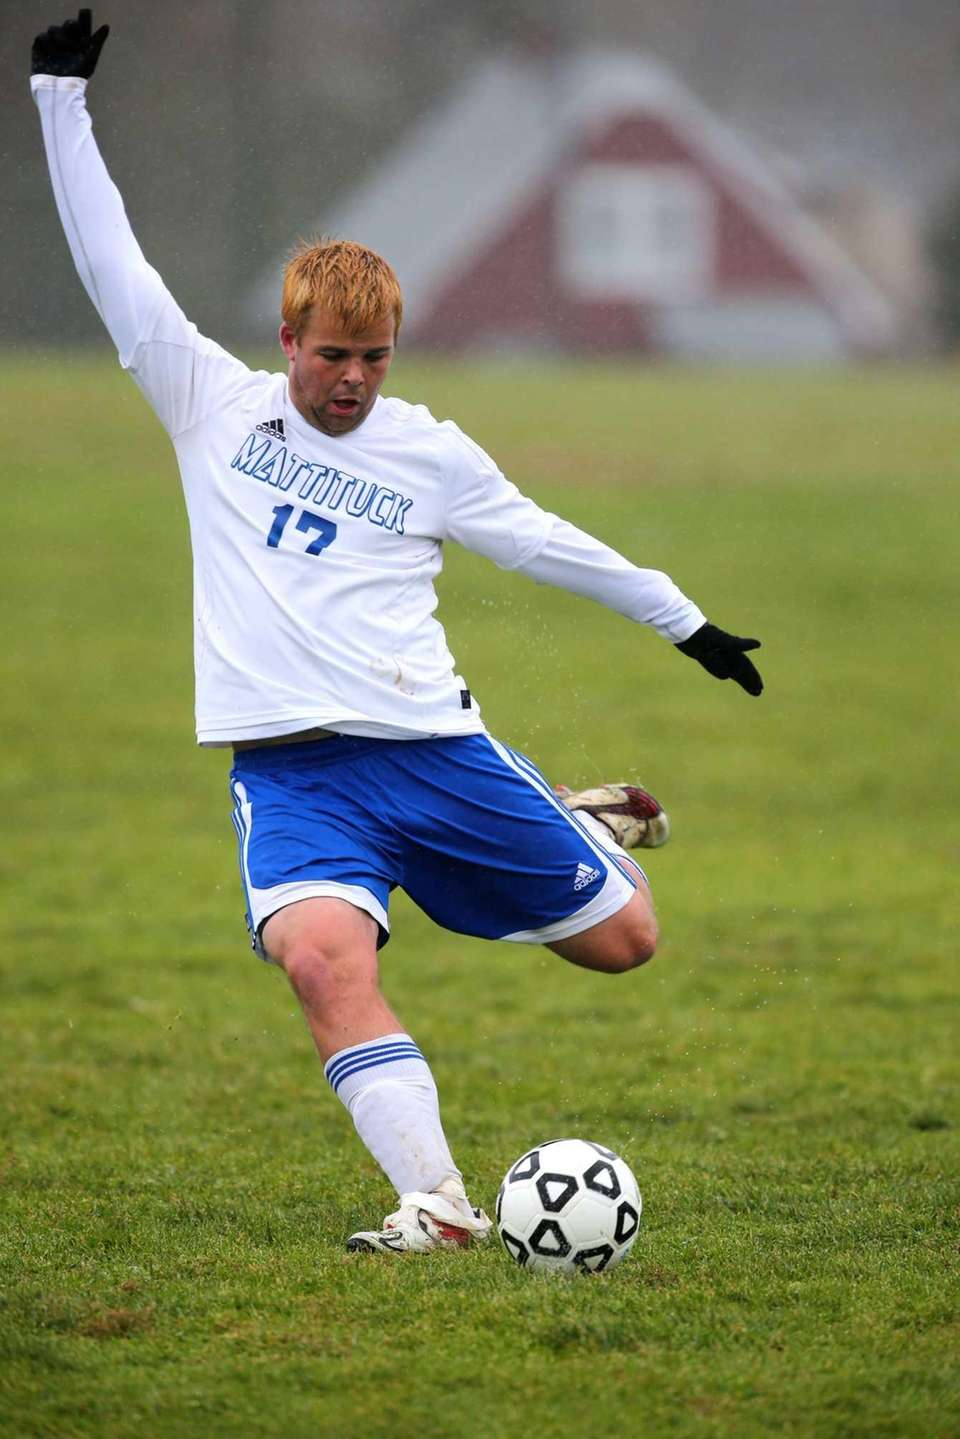 Mattituck's Ryan Finger takes a shot on goal